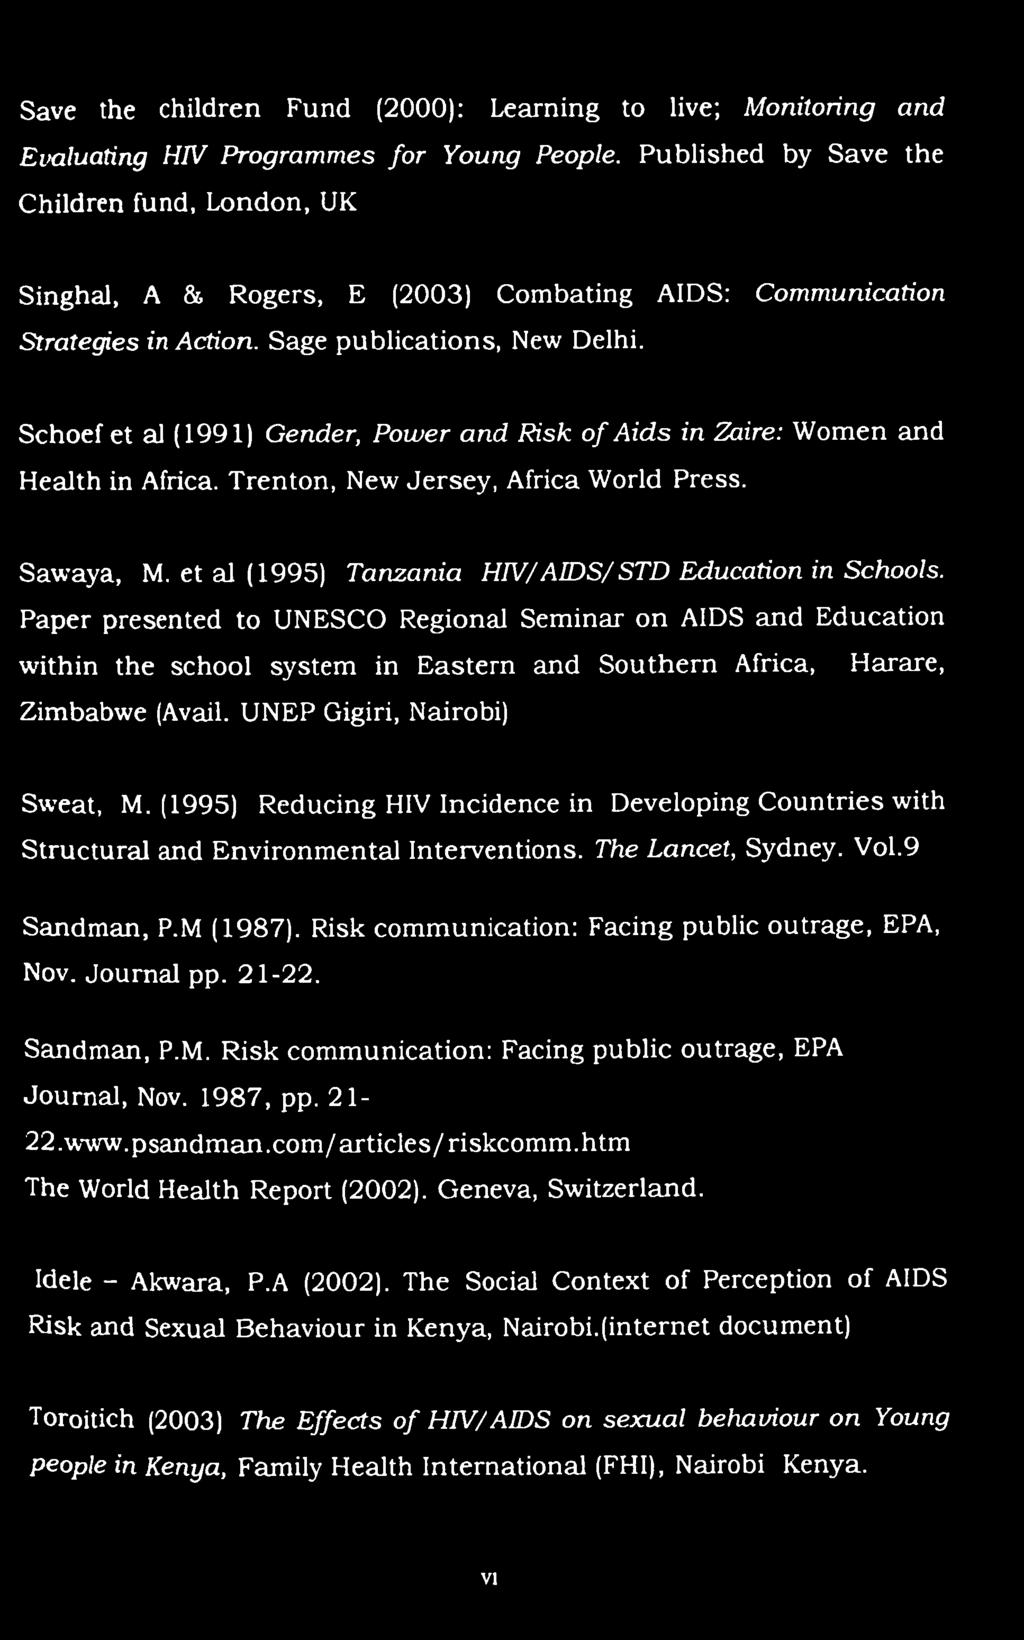 Schoef et al (1991) Gender, Power and Risk of Aids in Zaire: Women and Health in Africa. Trenton, New Jersey, Africa World Press. Sawaya, M. et al (1995) Tanzania HIV/AIDS/STD Education in Schools.